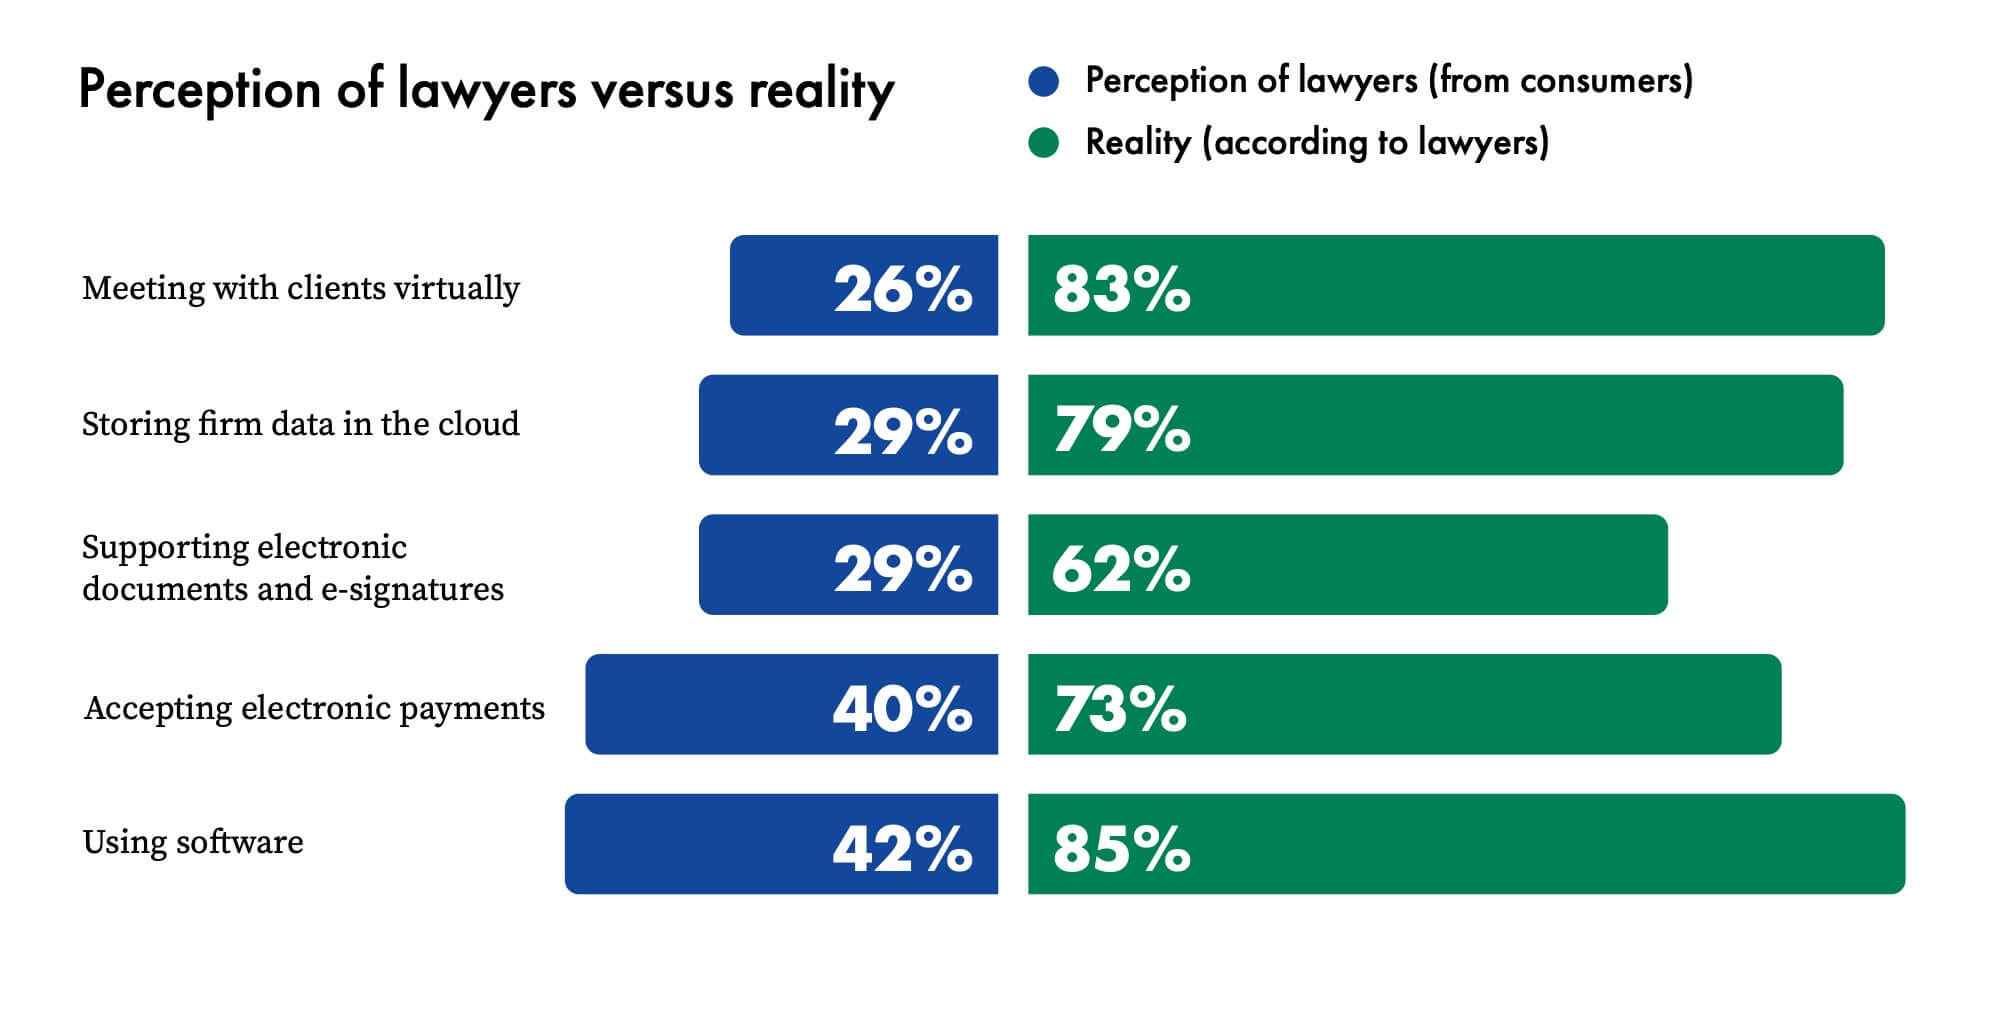 deliver legal services effectively and securely online